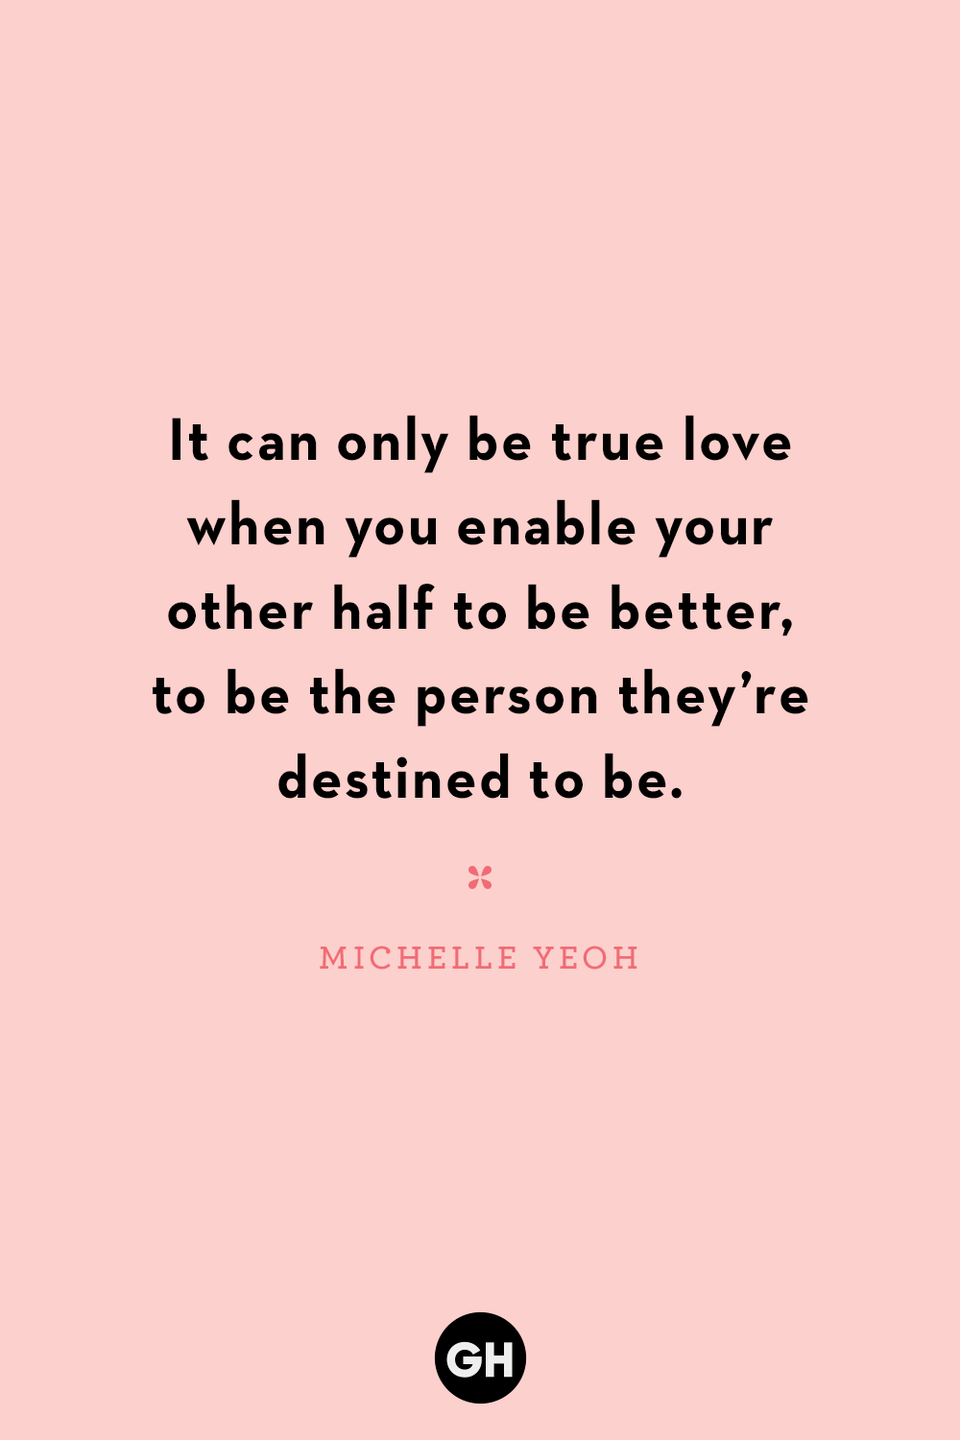 <p>It can only be true love when you enable your other half to be better, to be the person they're destined to be.</p>